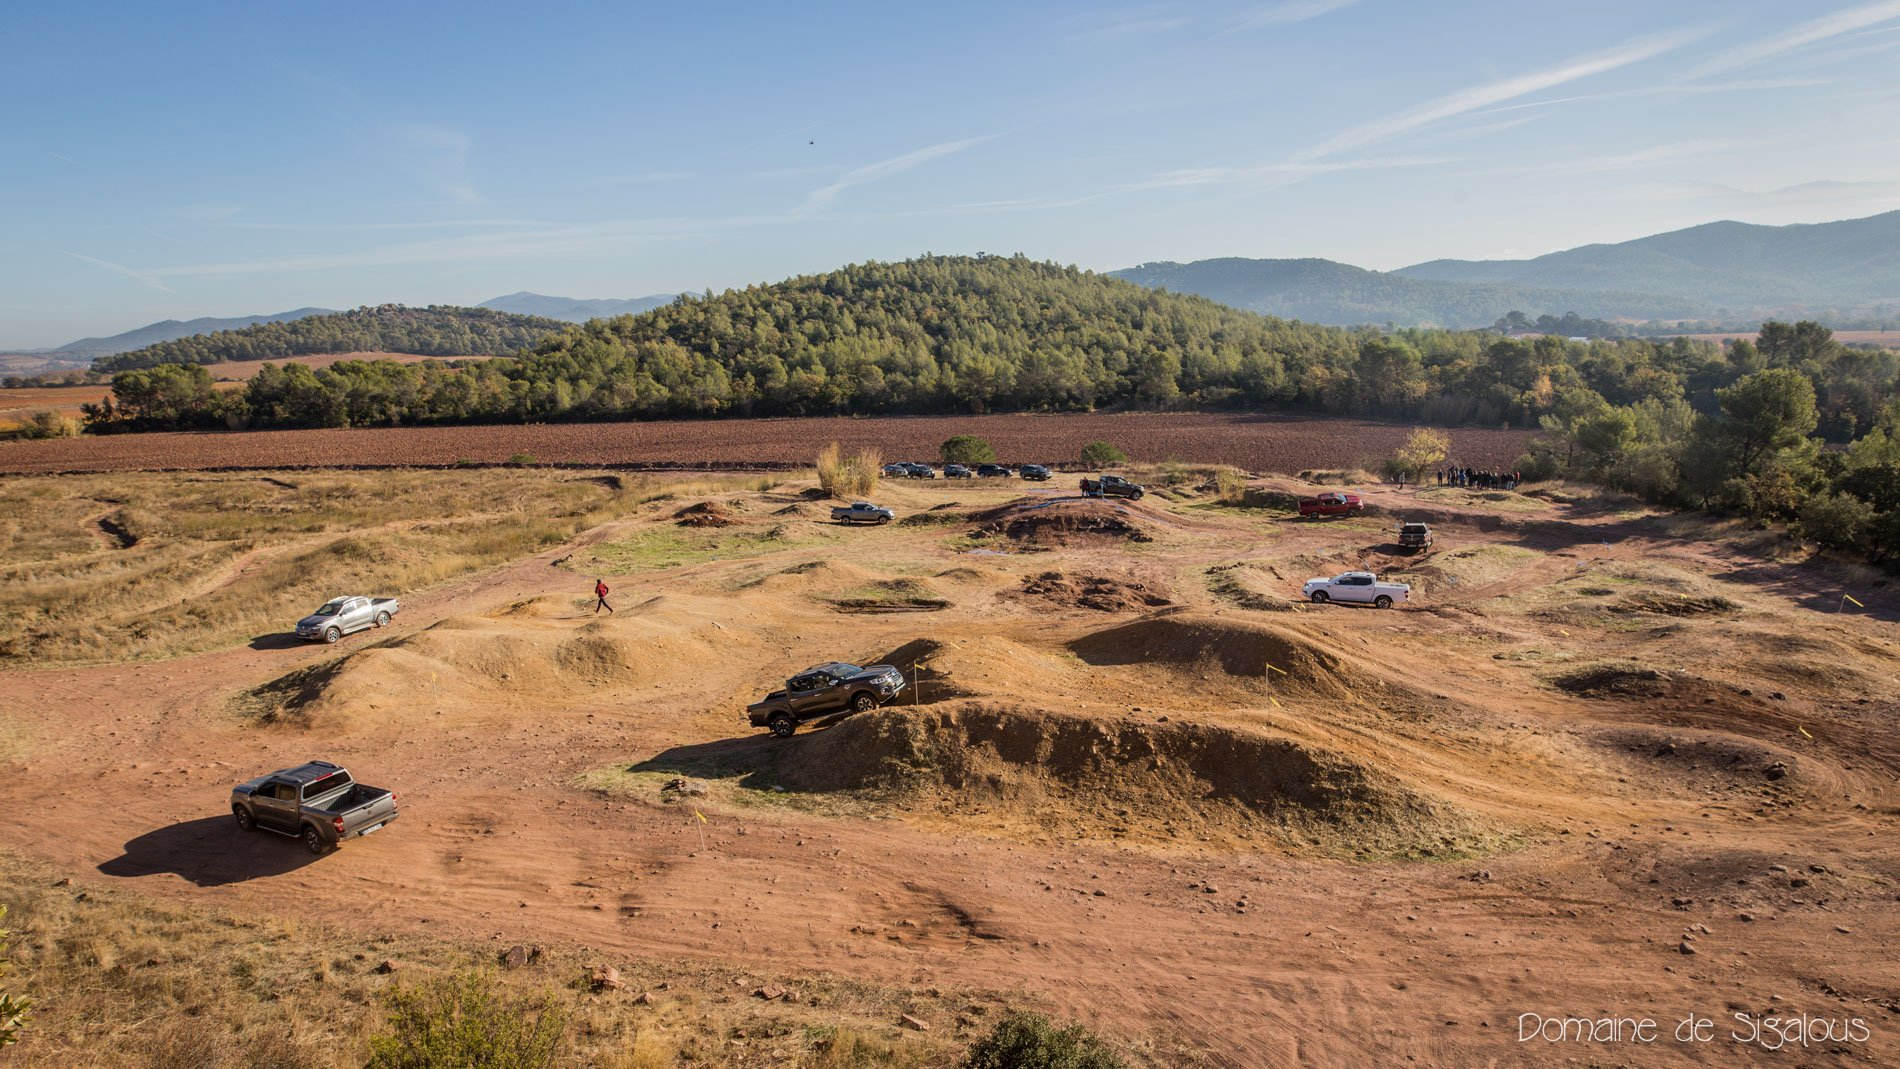 domaine sigalous off road 1179